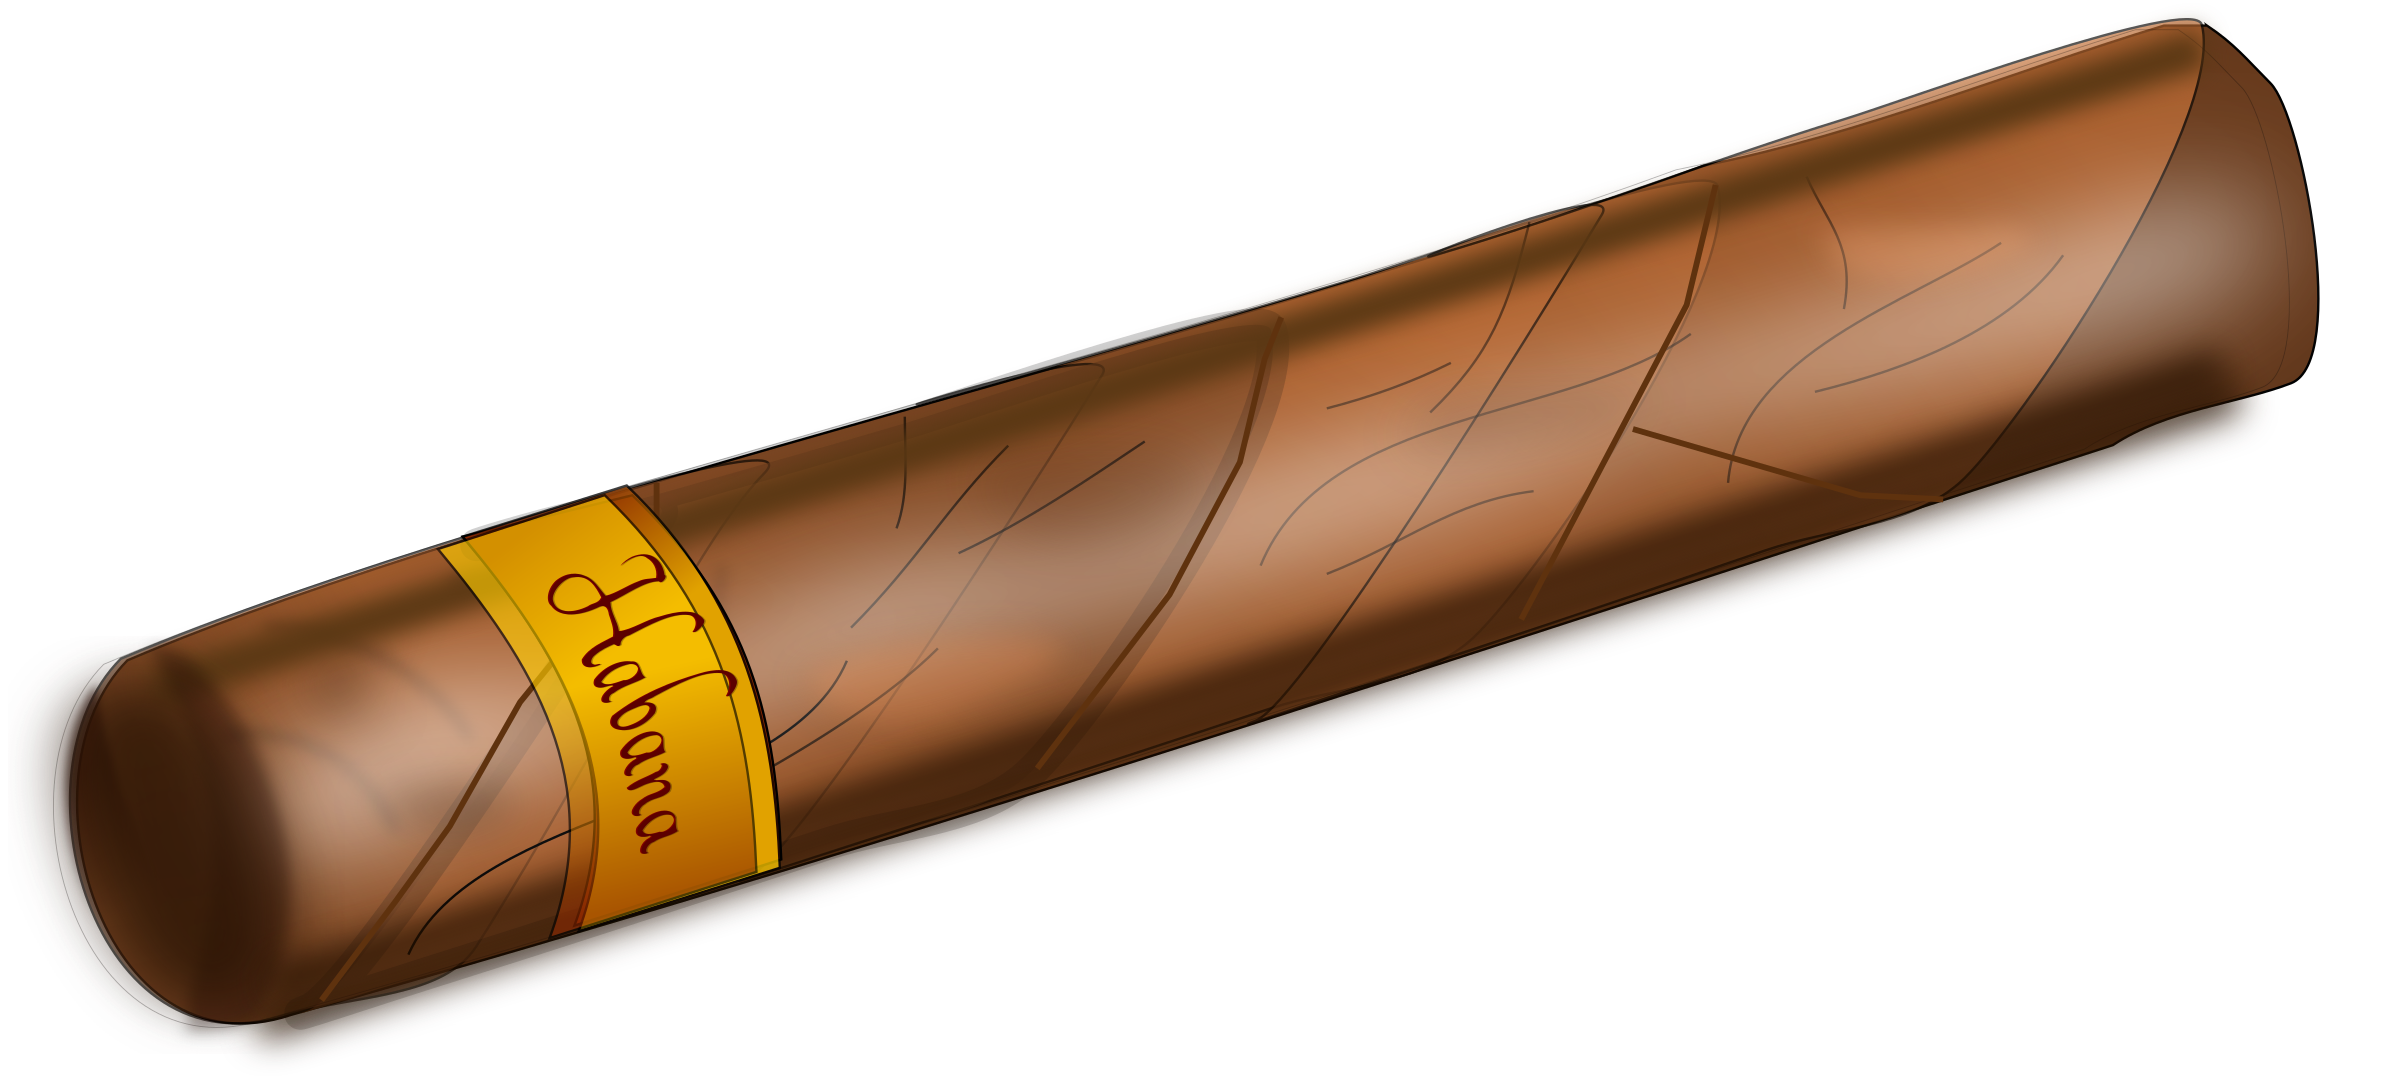 cuban cigar by netalloy